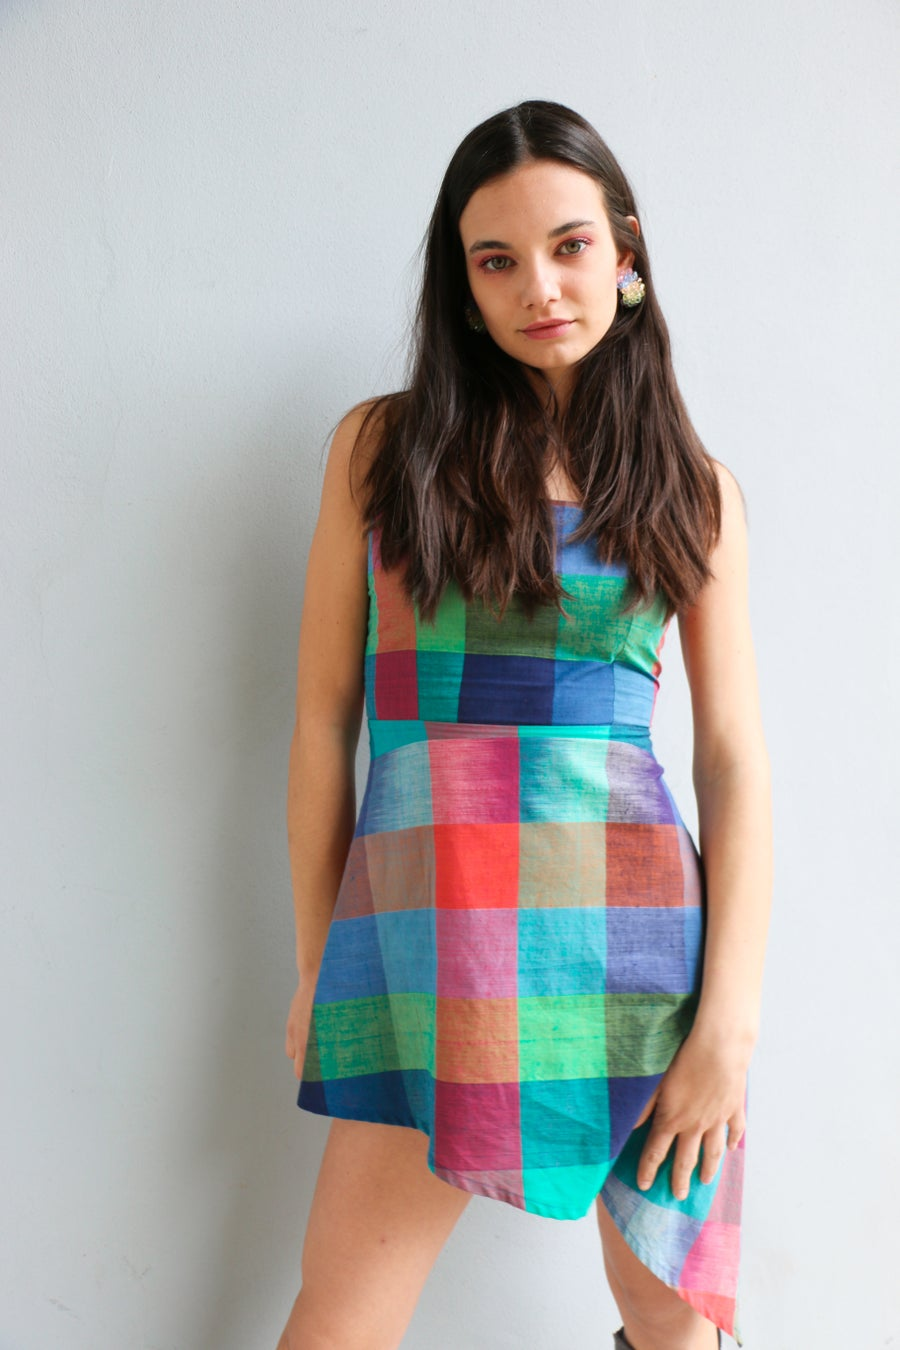 Image of Quadretti assymetric dress